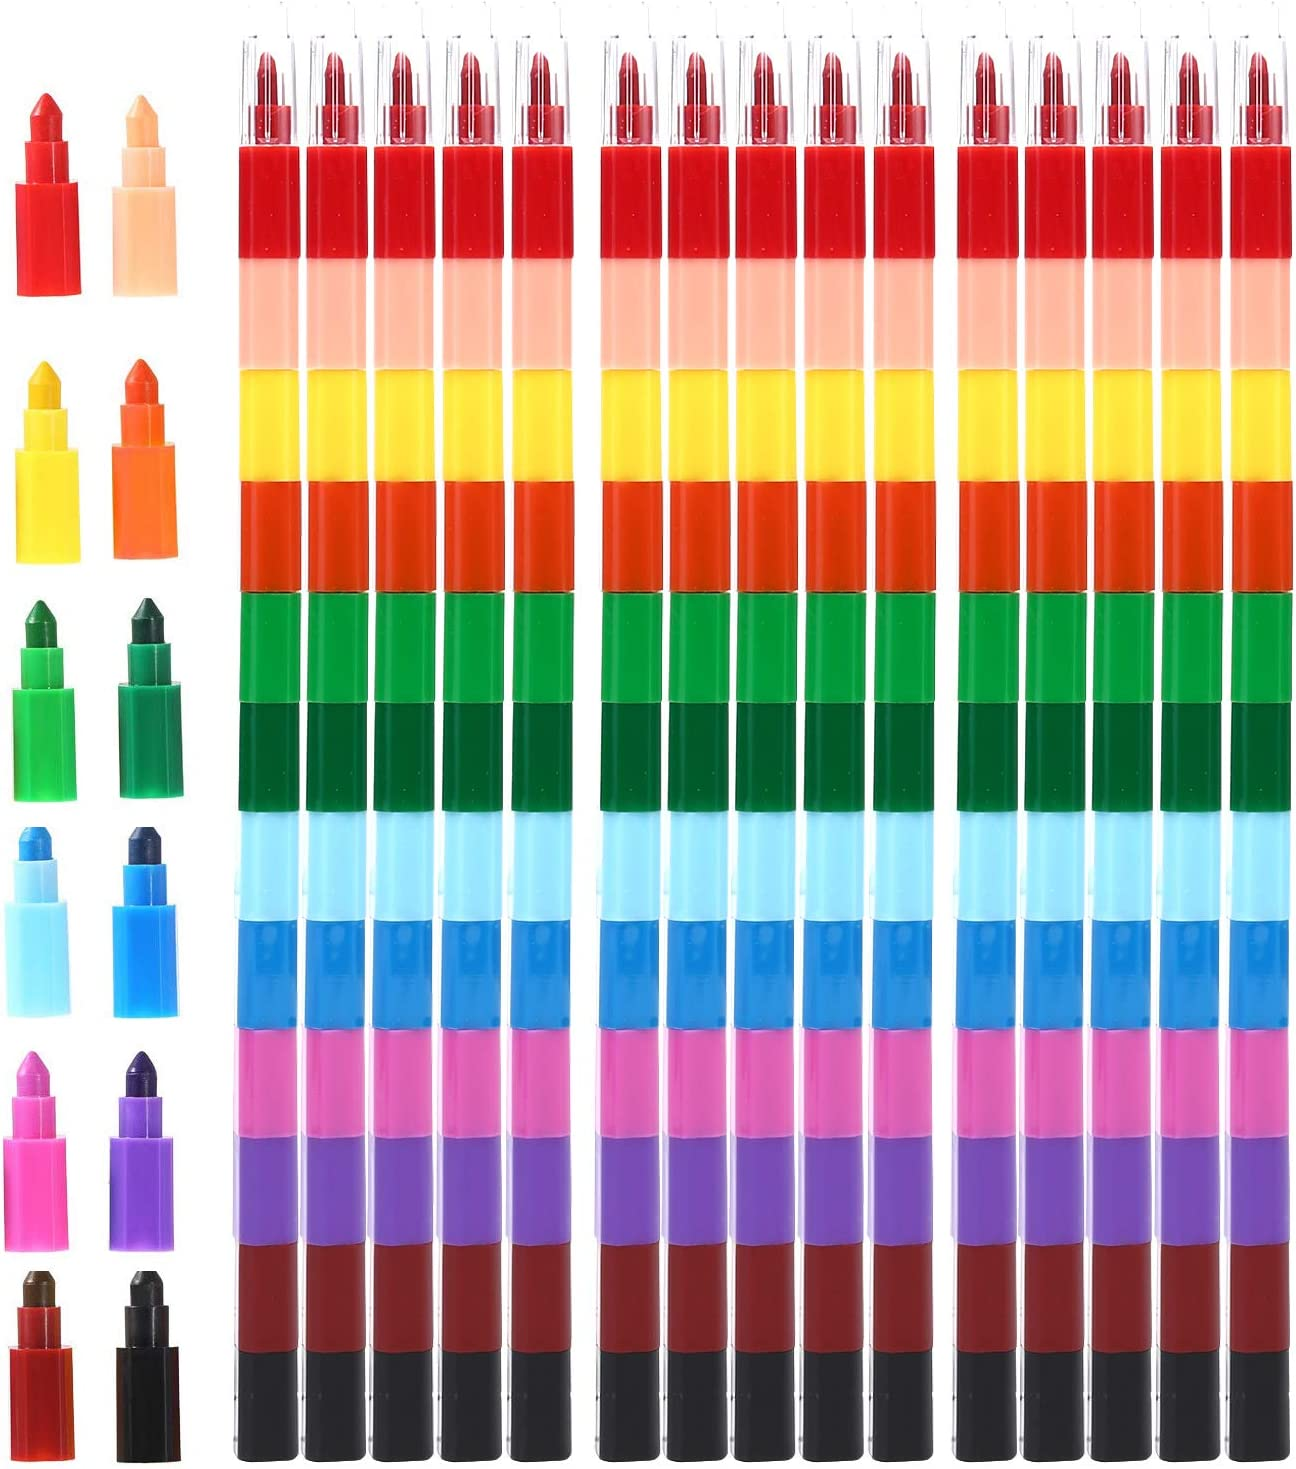 MeiMeiDa 24 Pieces Stacking Crayons for Kids Party Favors Colorful Stackable Buildable Crayon Set Prizes Goodie Bag Filler Fun Rainbow Crayons for Art Paint Party